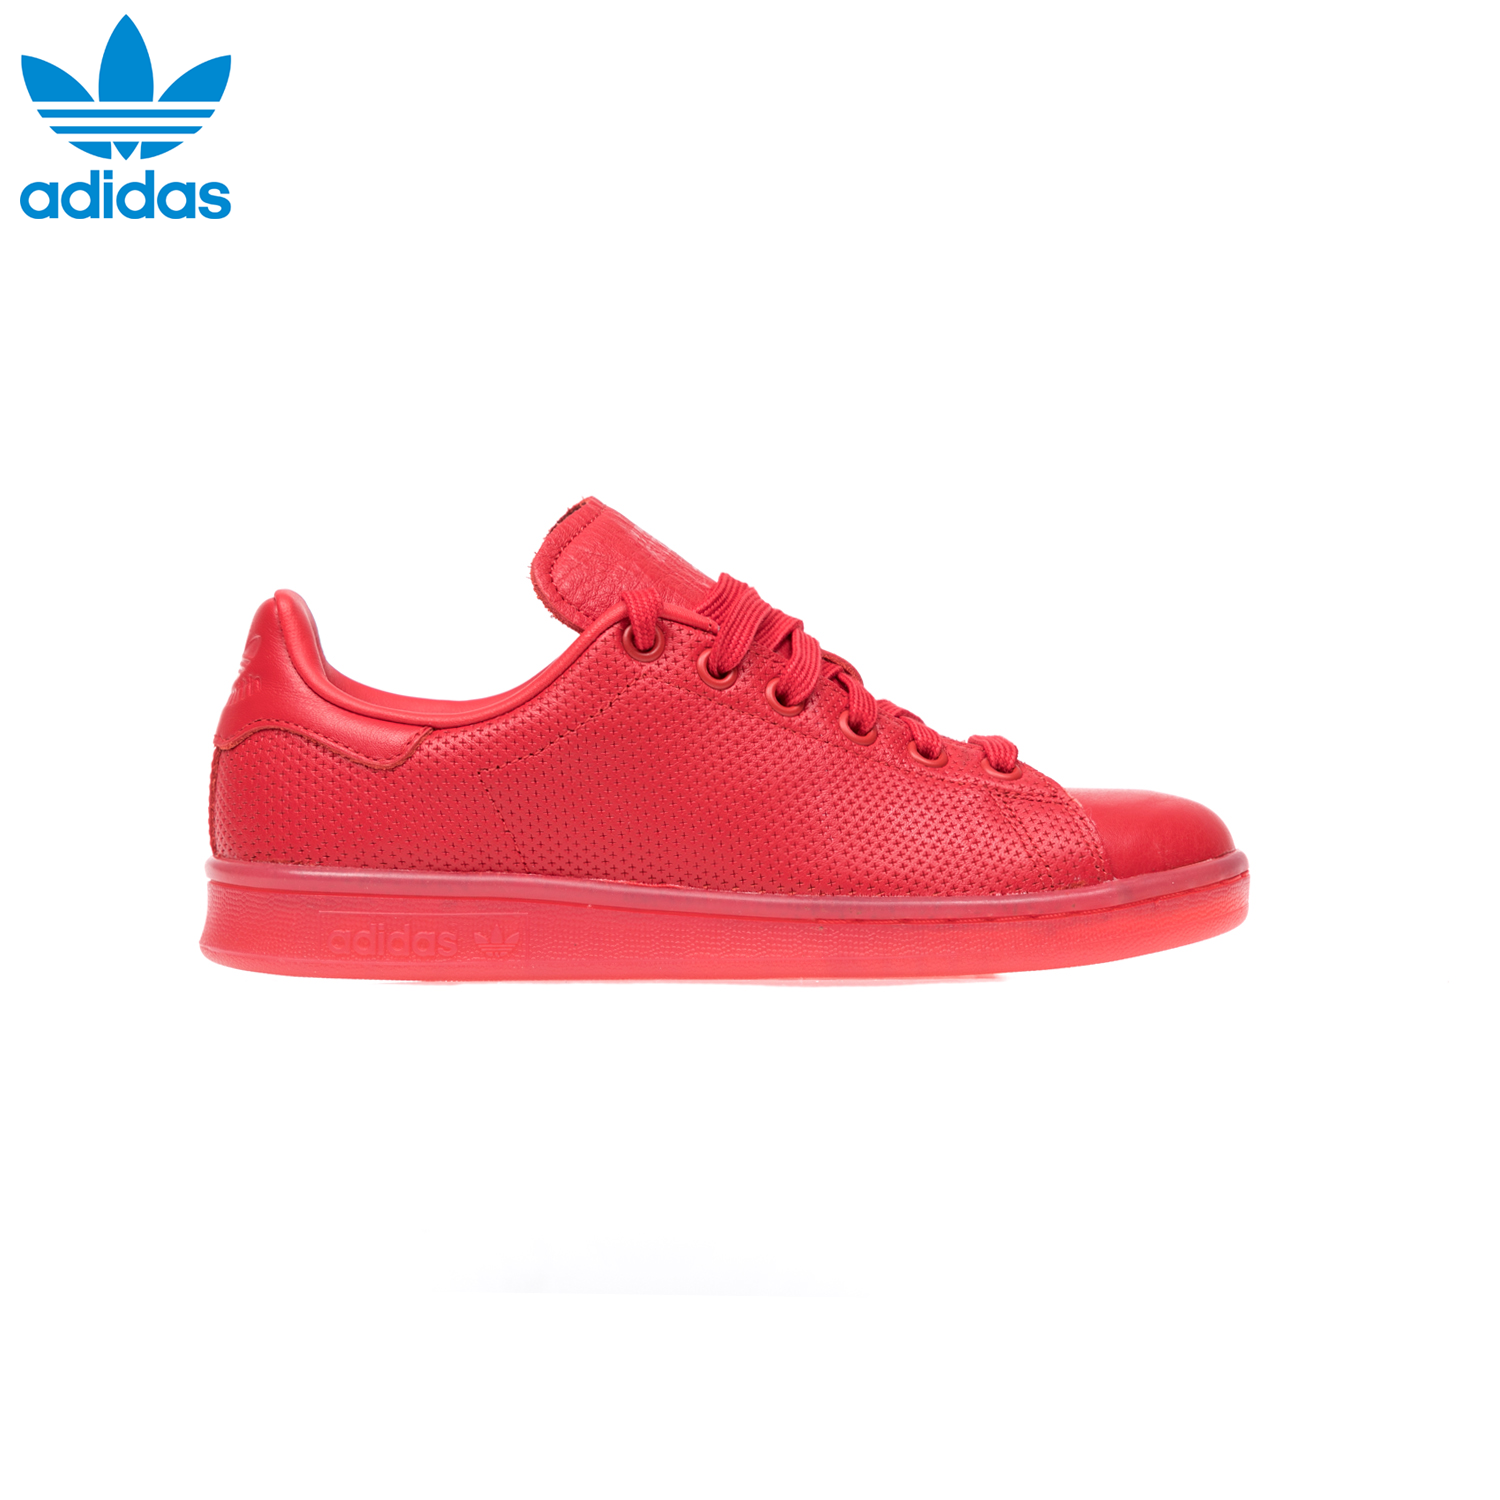 ADIDAS – .Unisex παπούτσια adidas STAN SMITH ADICOLOR κόκκινα